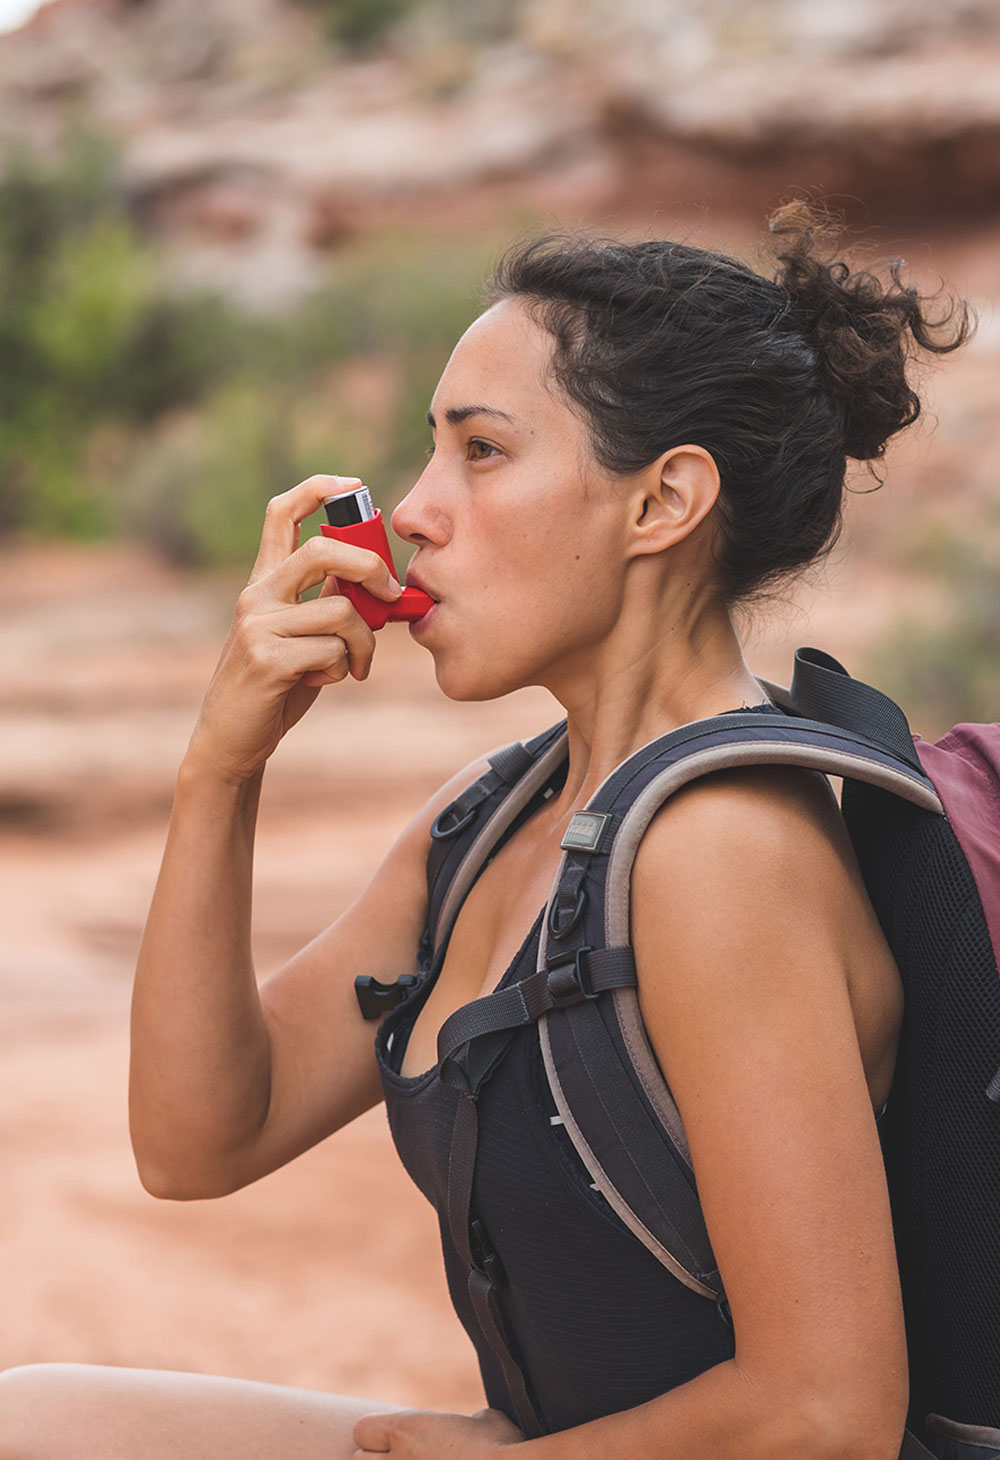 Woman With Chronic Asthma Hiking in Desert